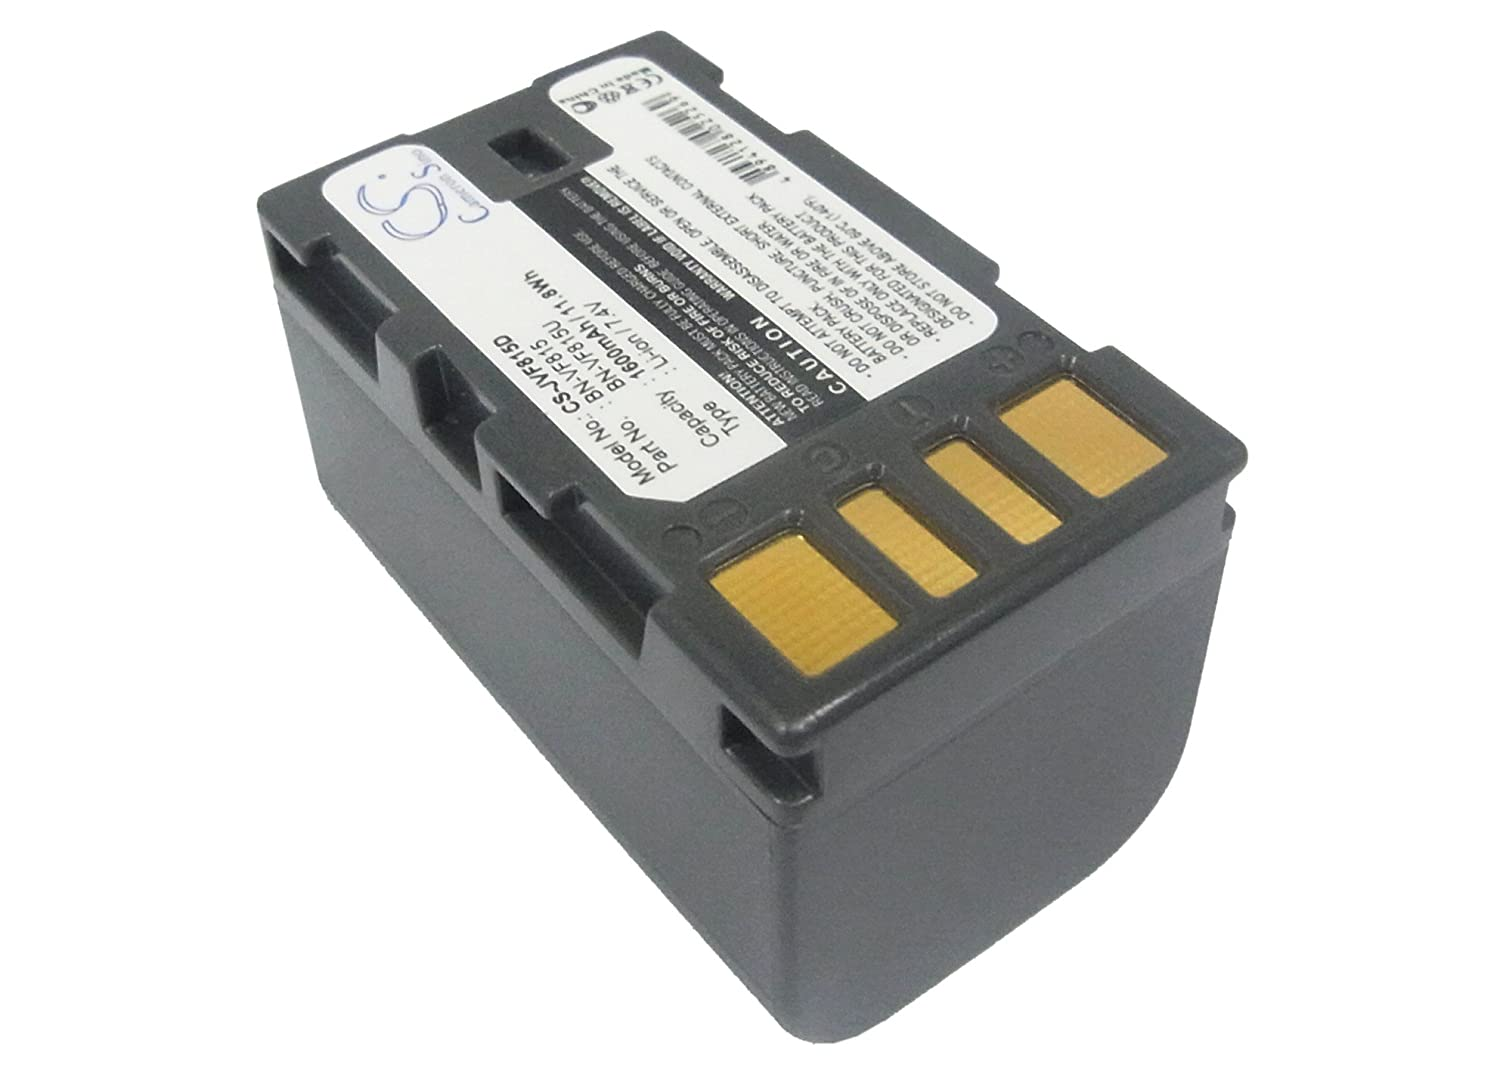 Cameron Sino Rechargeble Battery for JVC gz-hm90   B01B5JKC7K